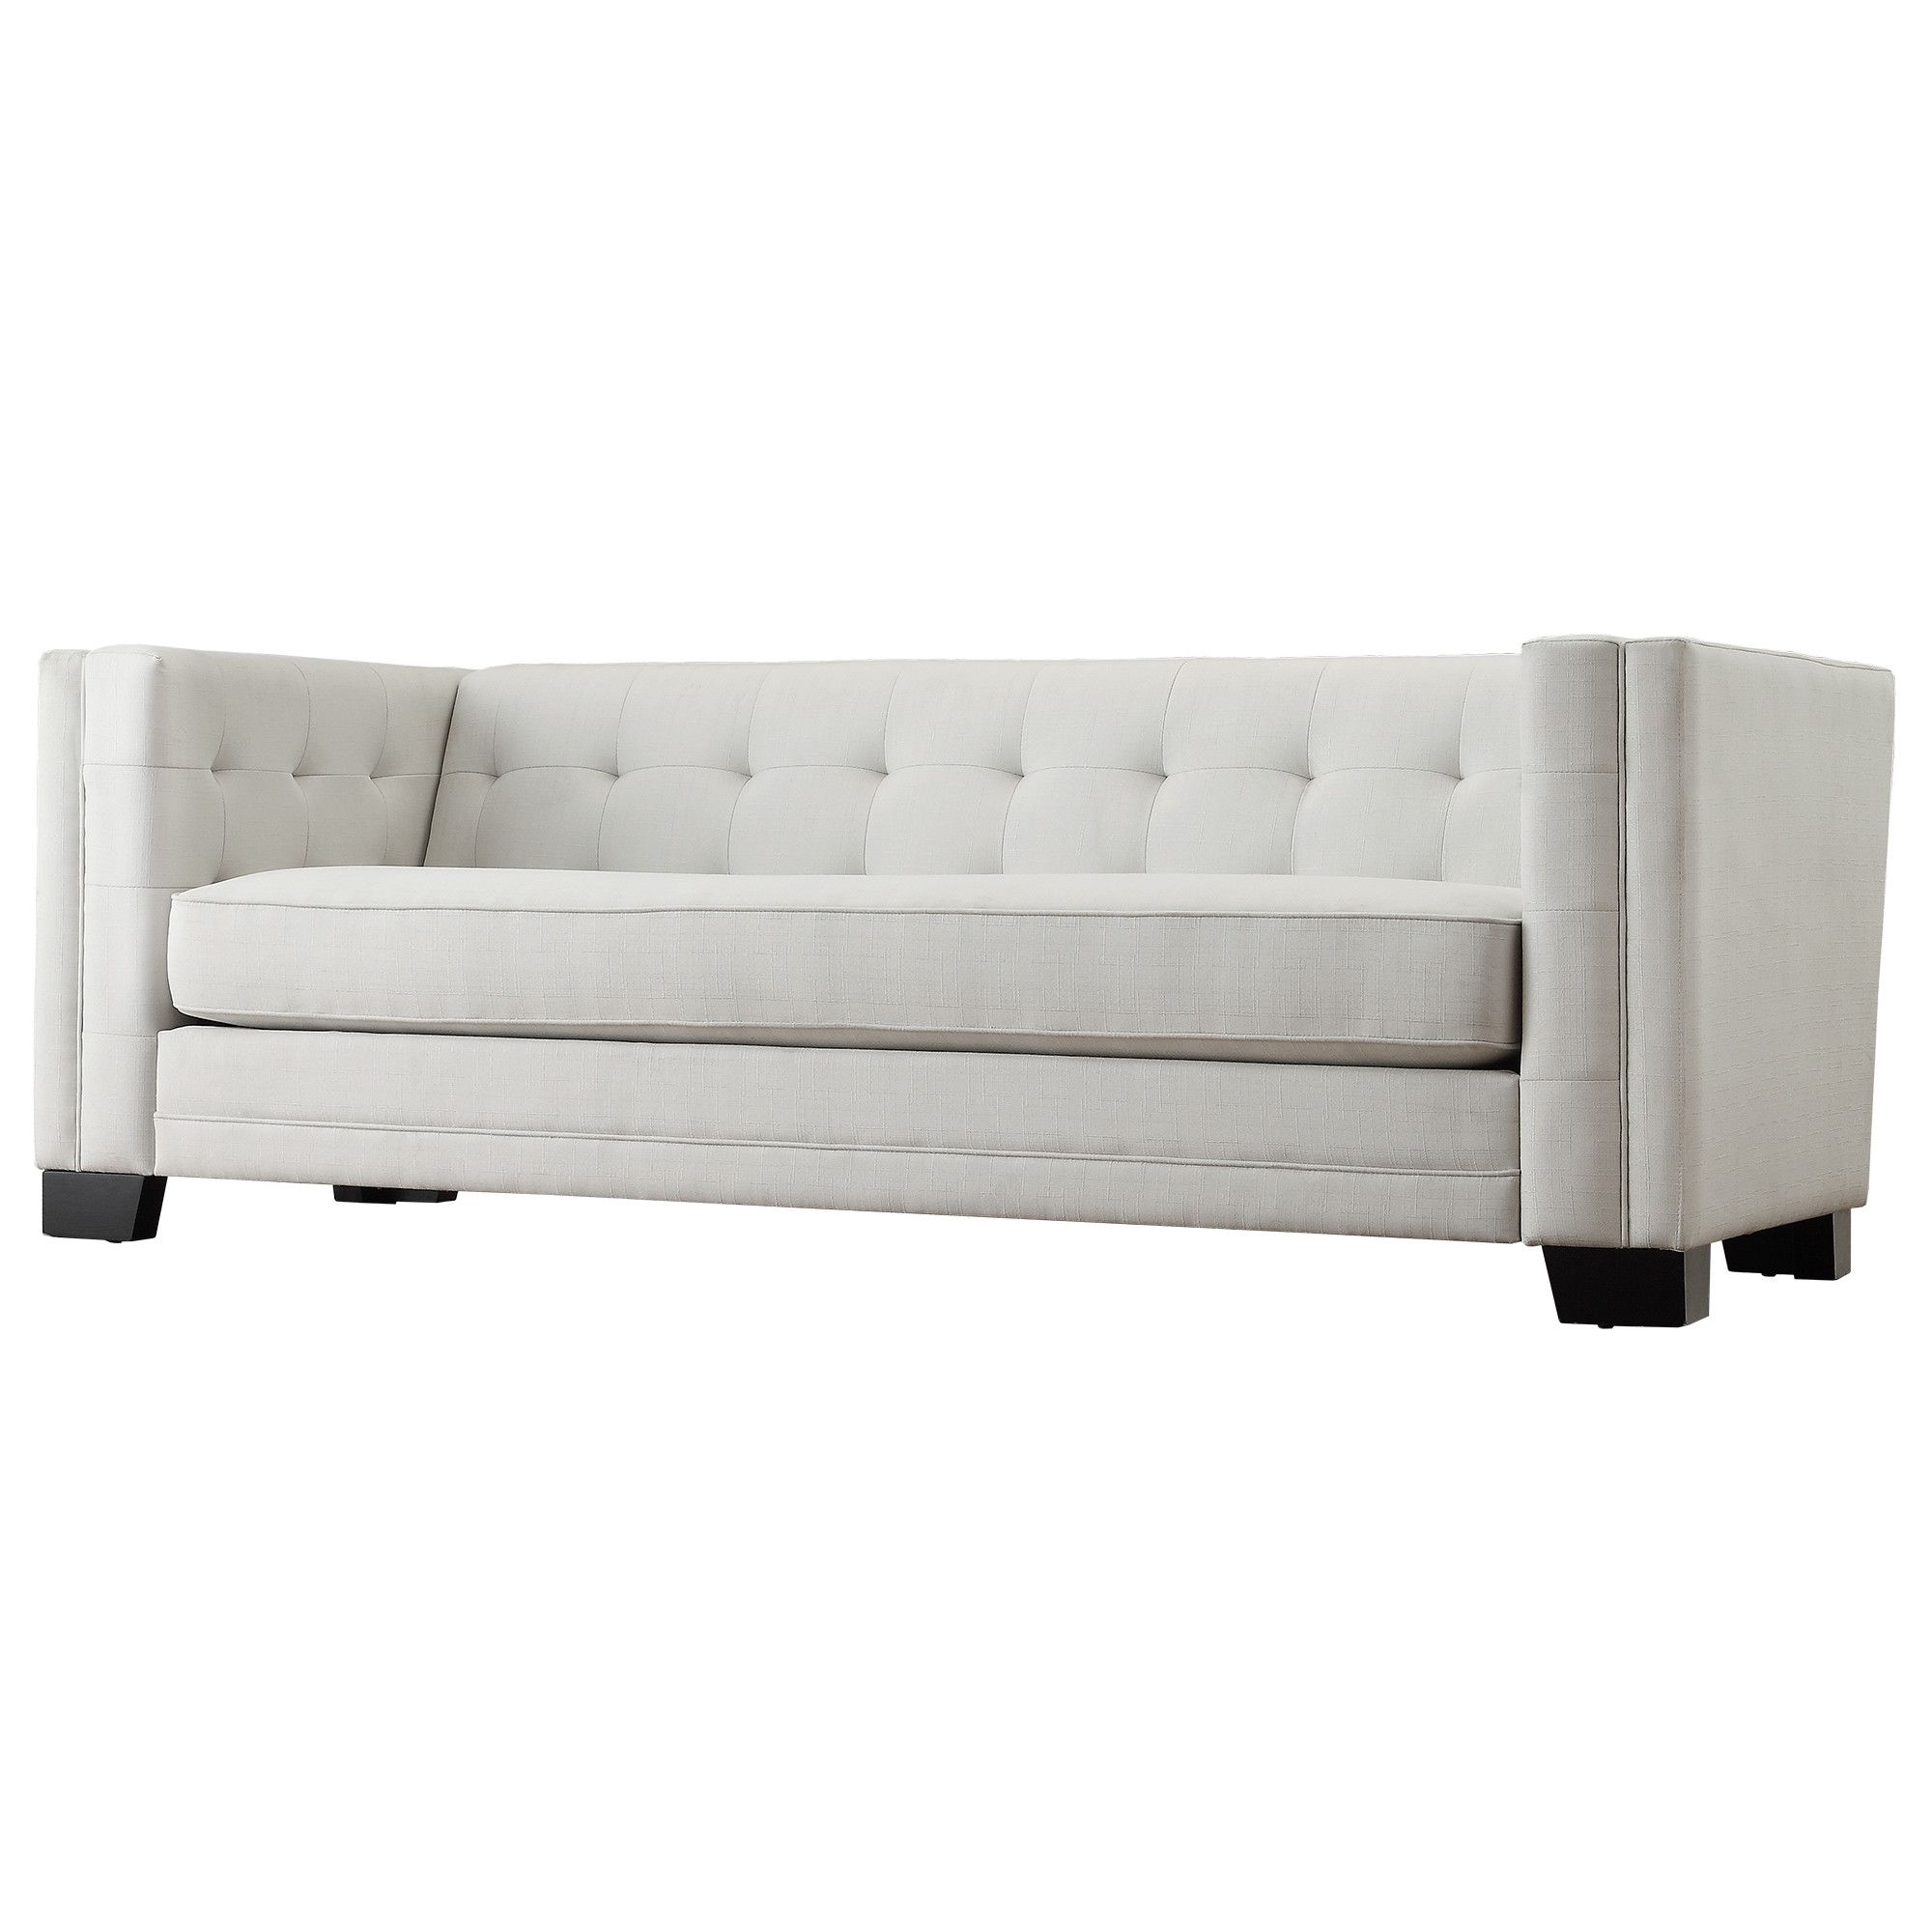 Kingstown Home Corvin Square Tufted Sofa Tasarım